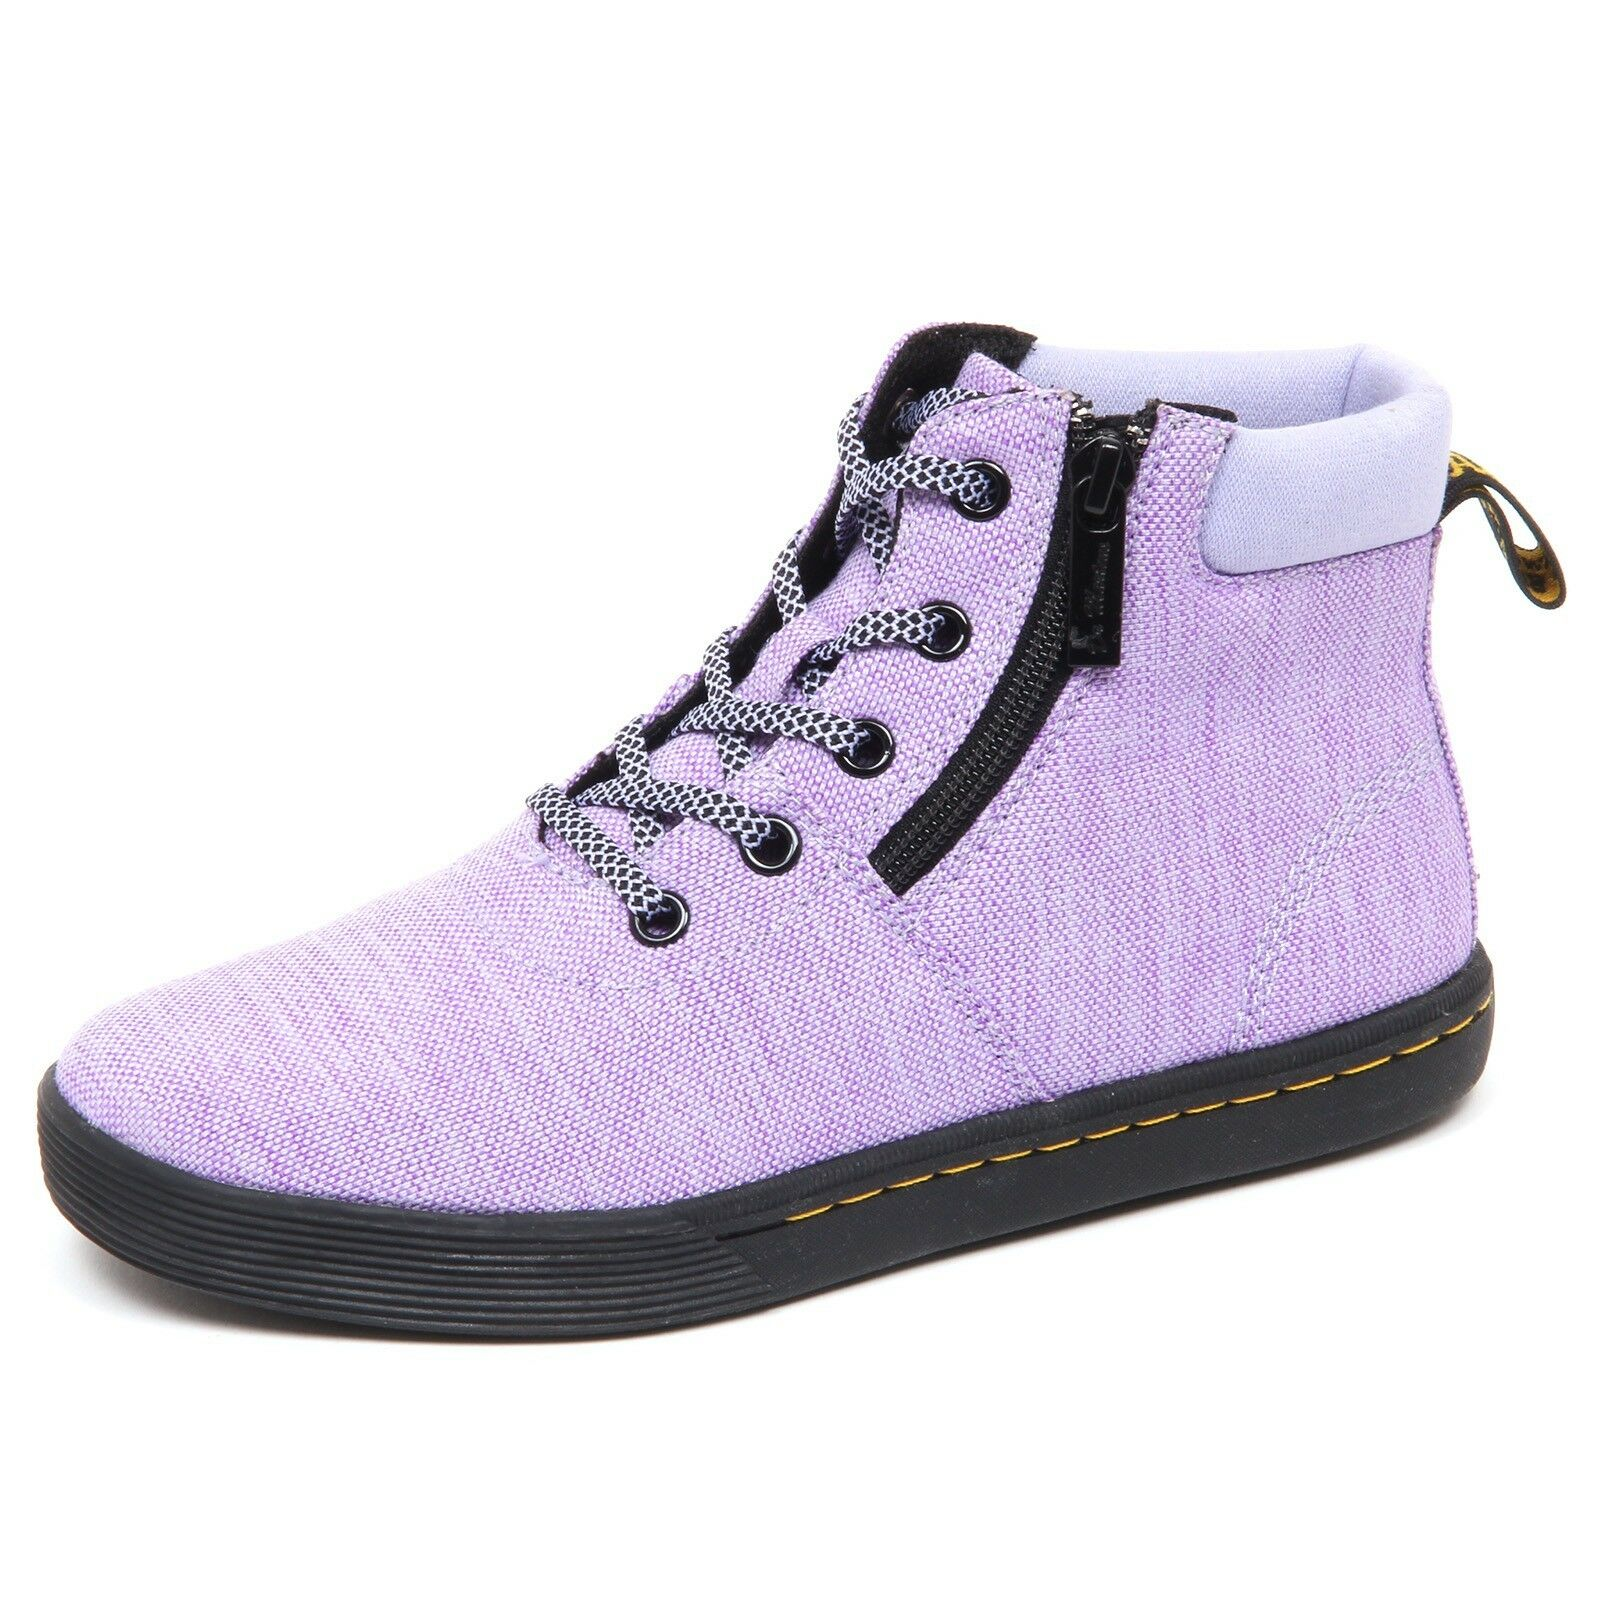 D7920 (SAMPLE NOT FOR SALE WITHOUT BOX) scarpe da ginnastica donna canvas DR. MARTENS scarpe